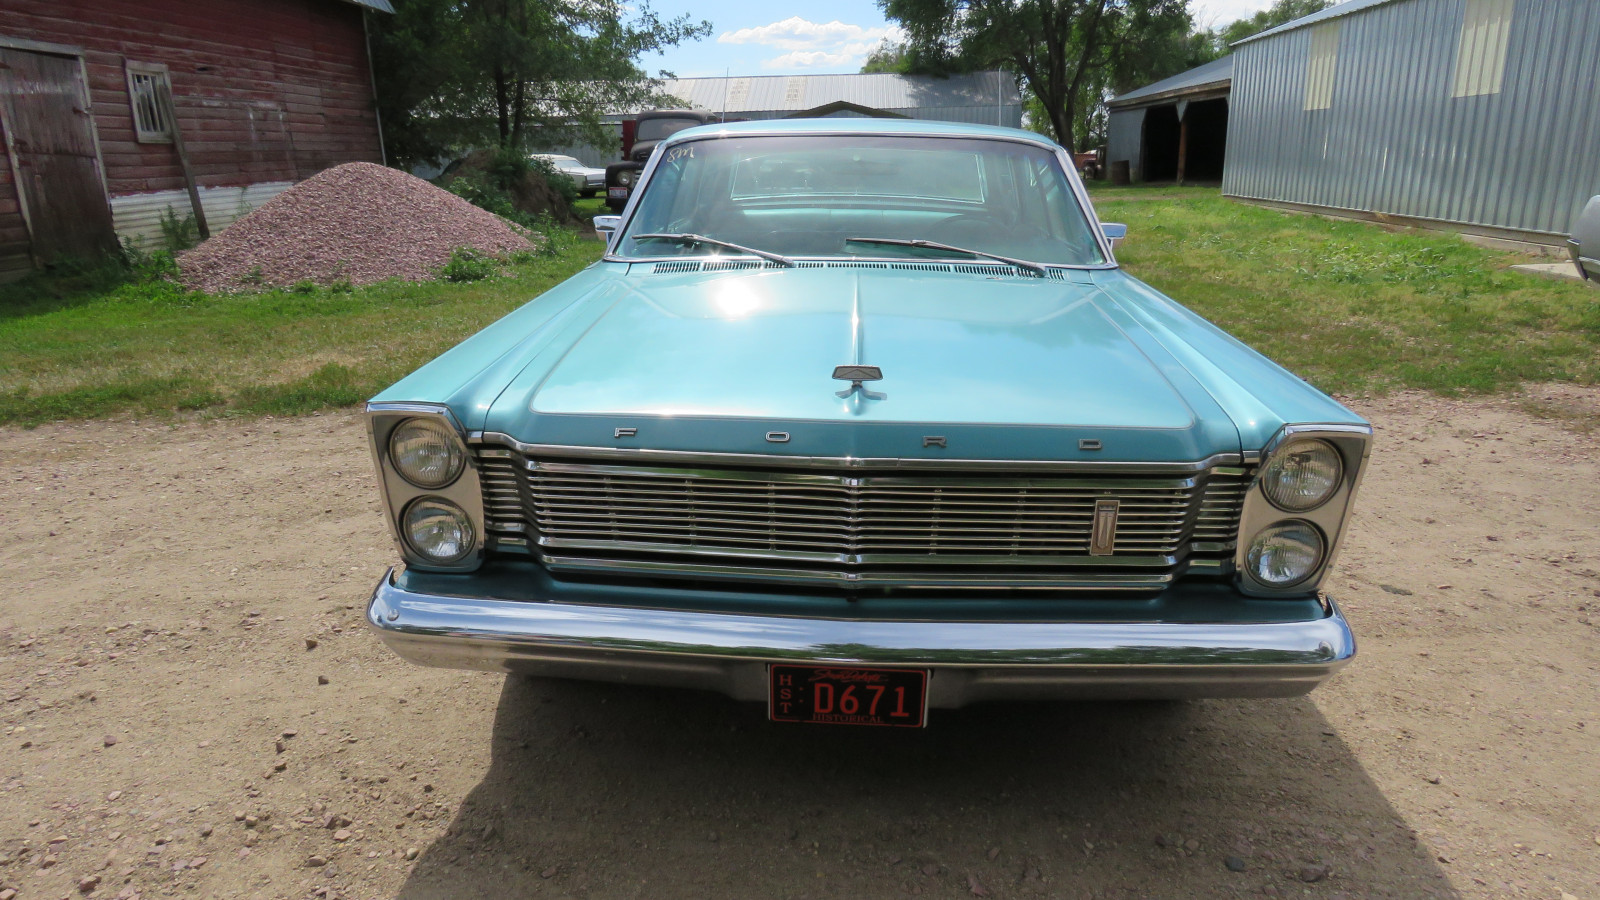 1965 Ford Galaxie 500 4dr HT - Image 2